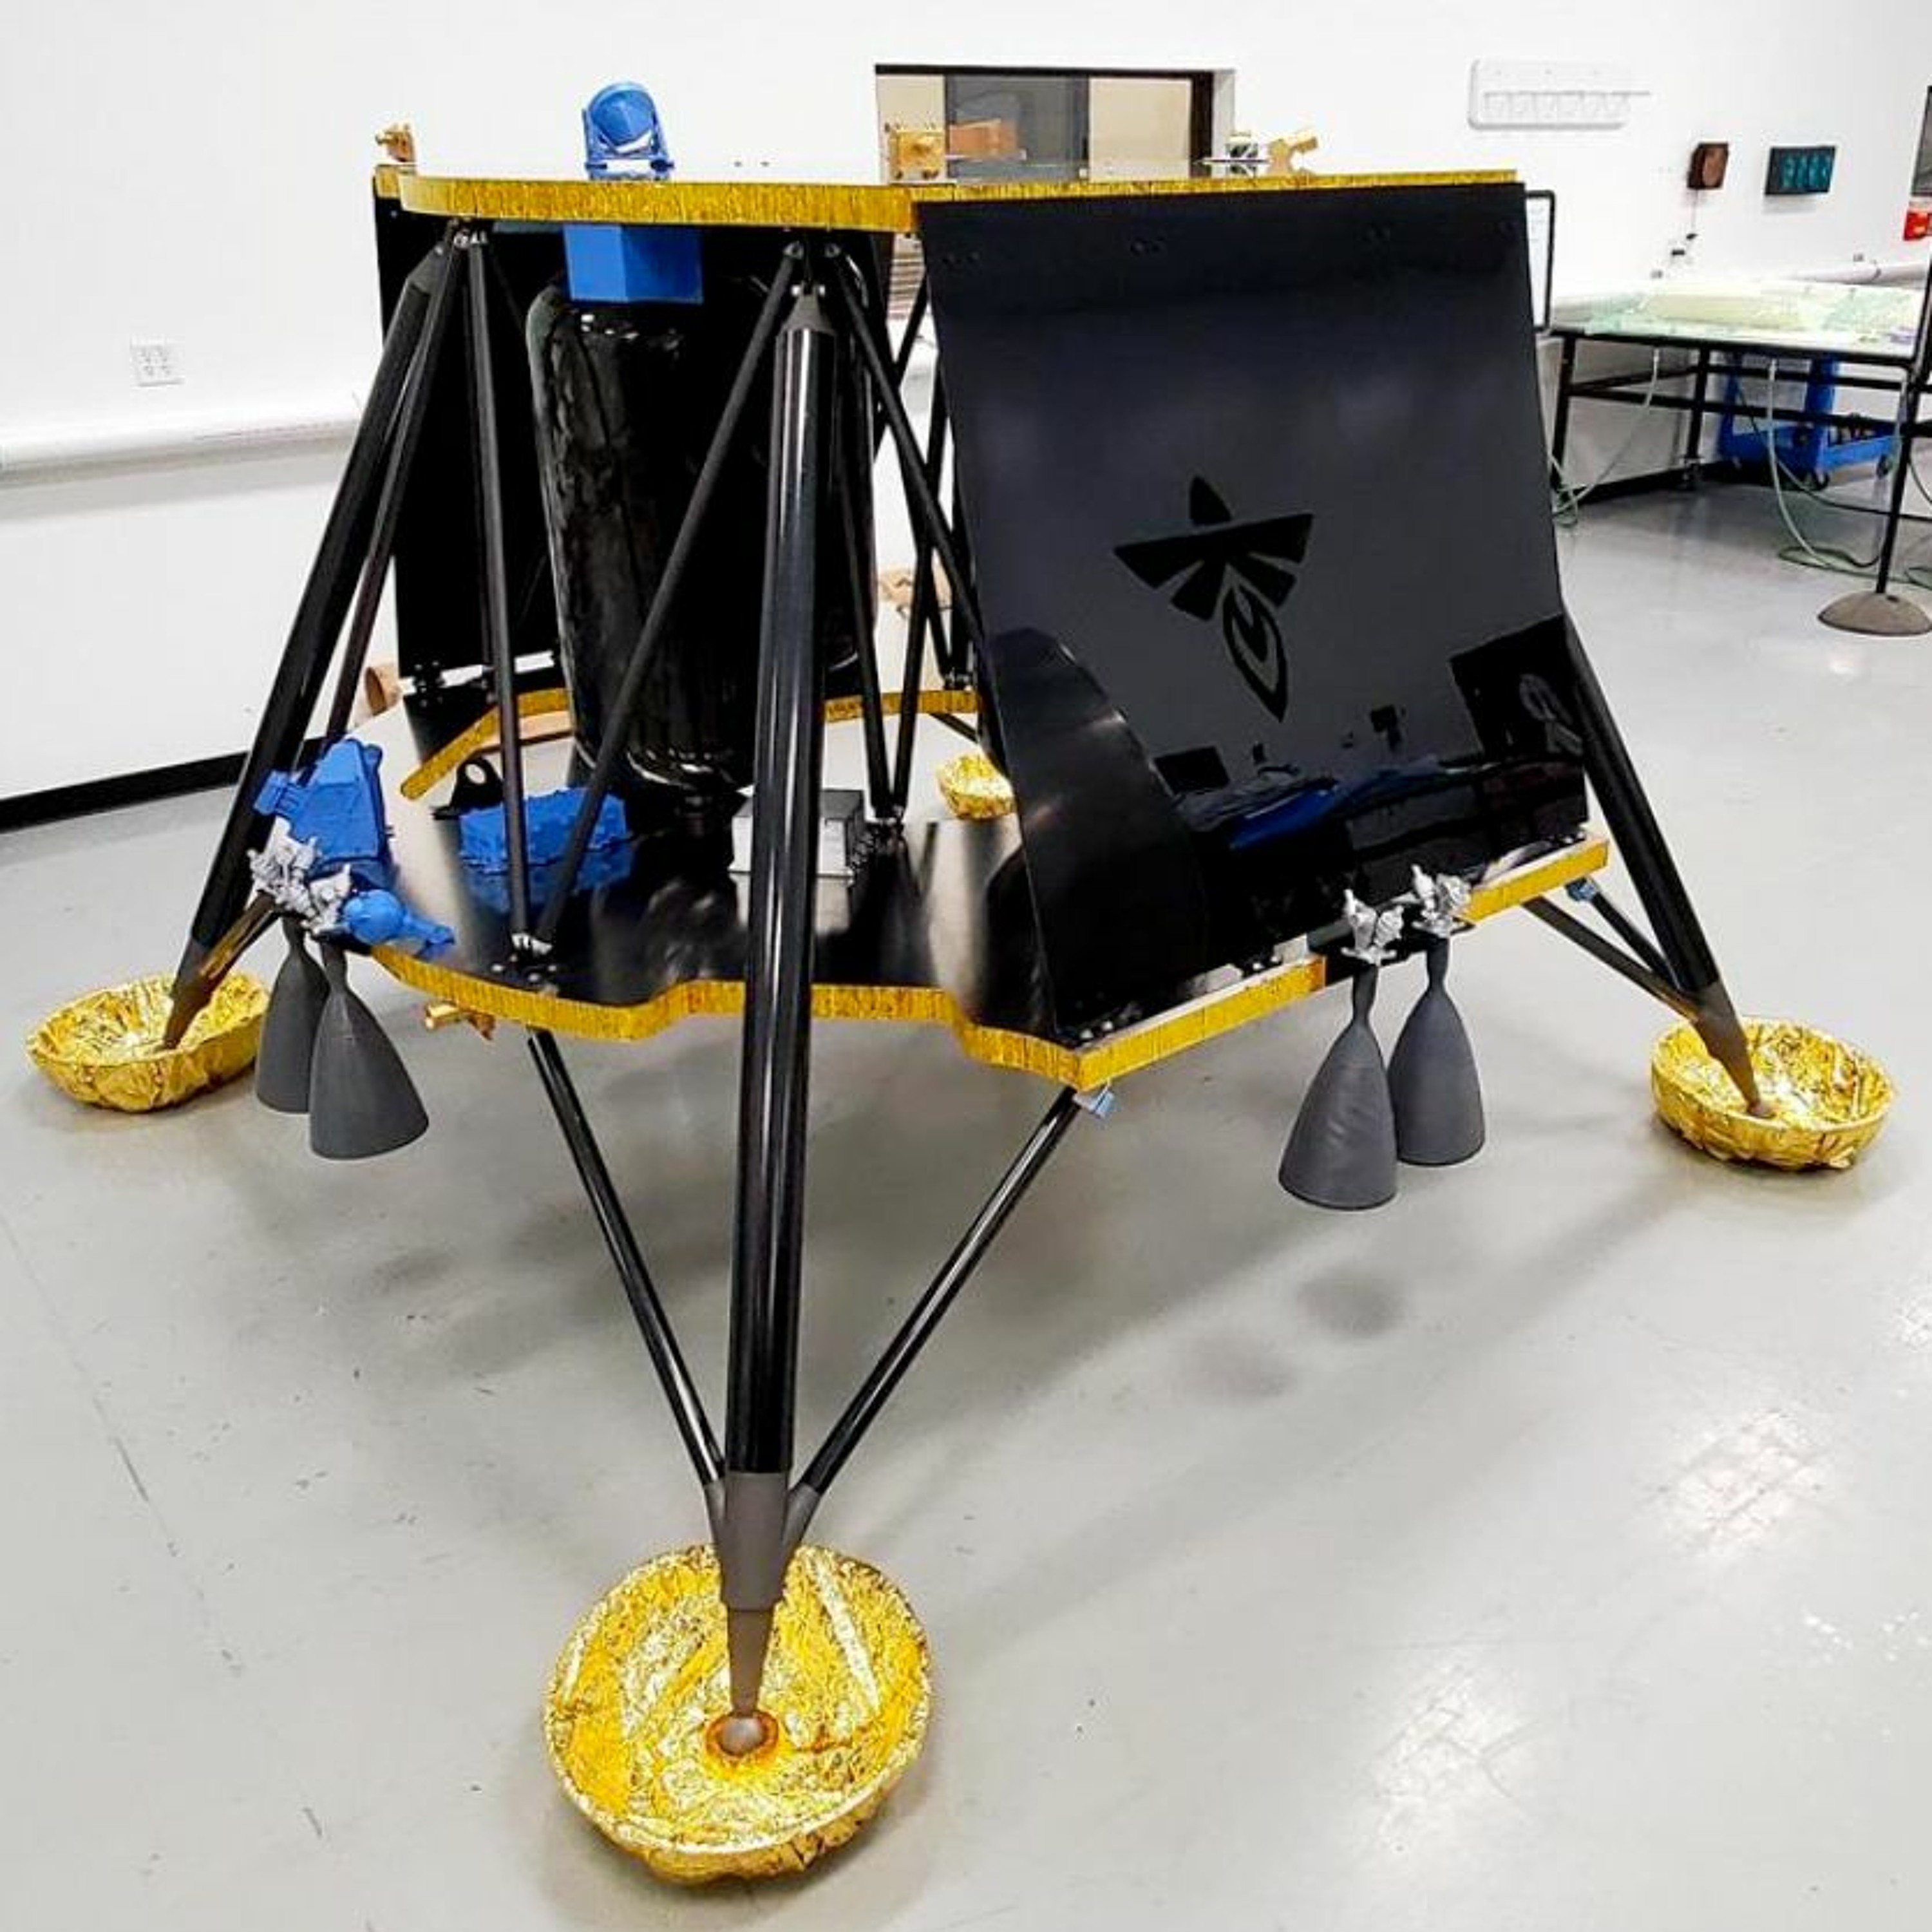 An Update on Firefly Aerospace Launch Vehicles and Spacecraft